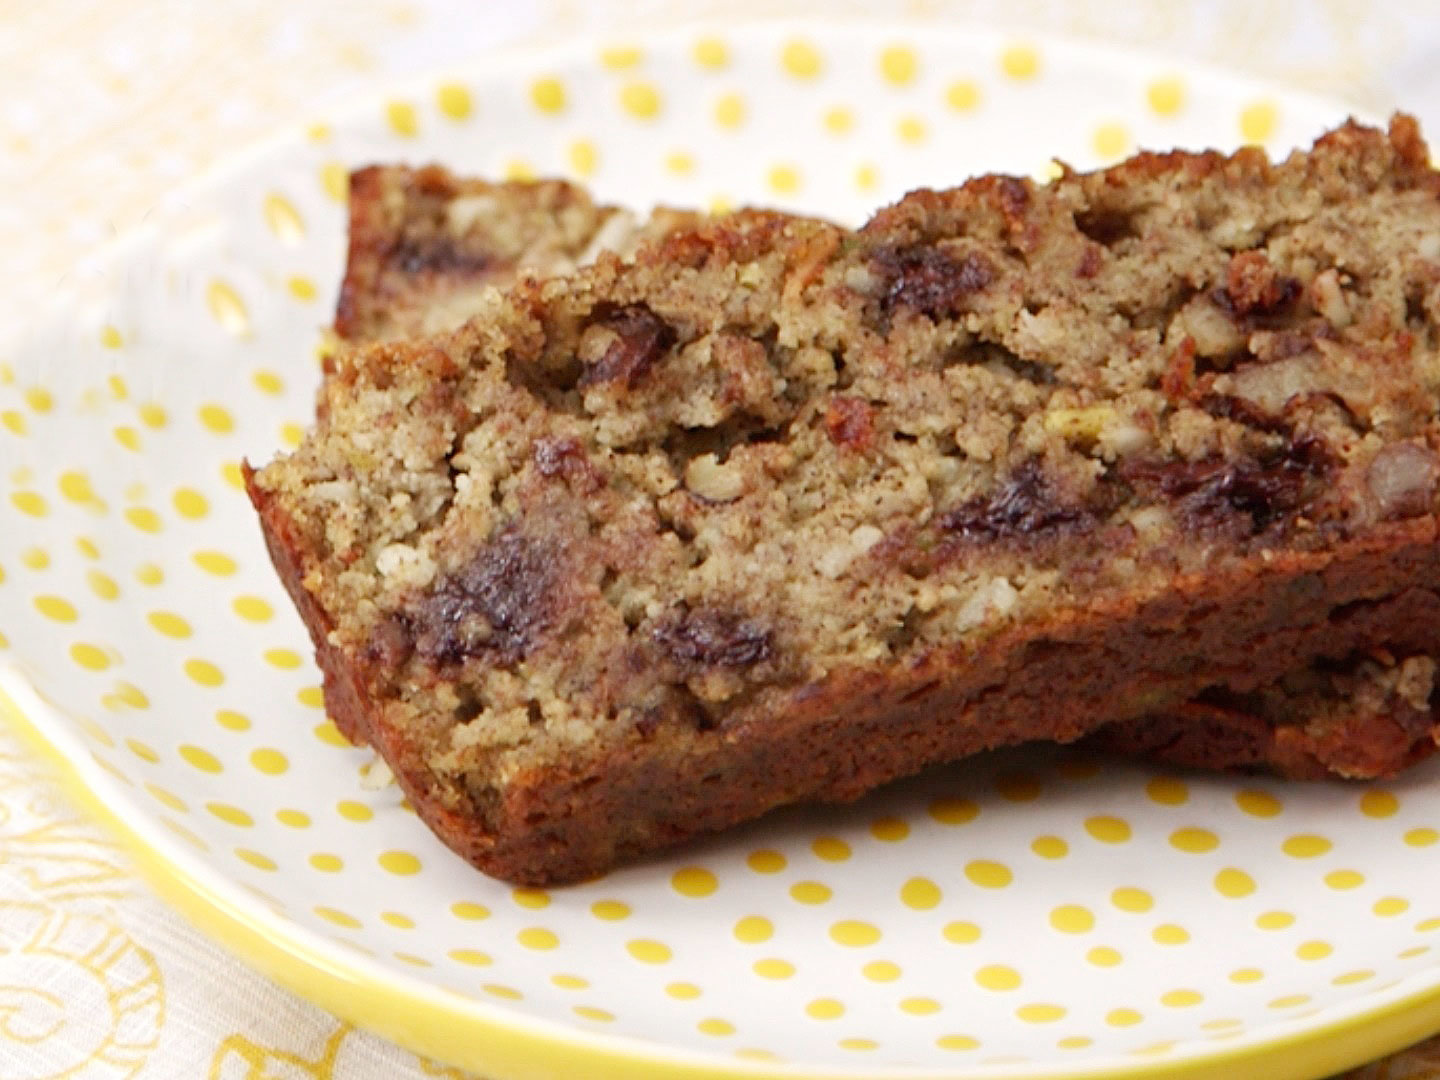 How to make avocado banana bread health forumfinder Image collections